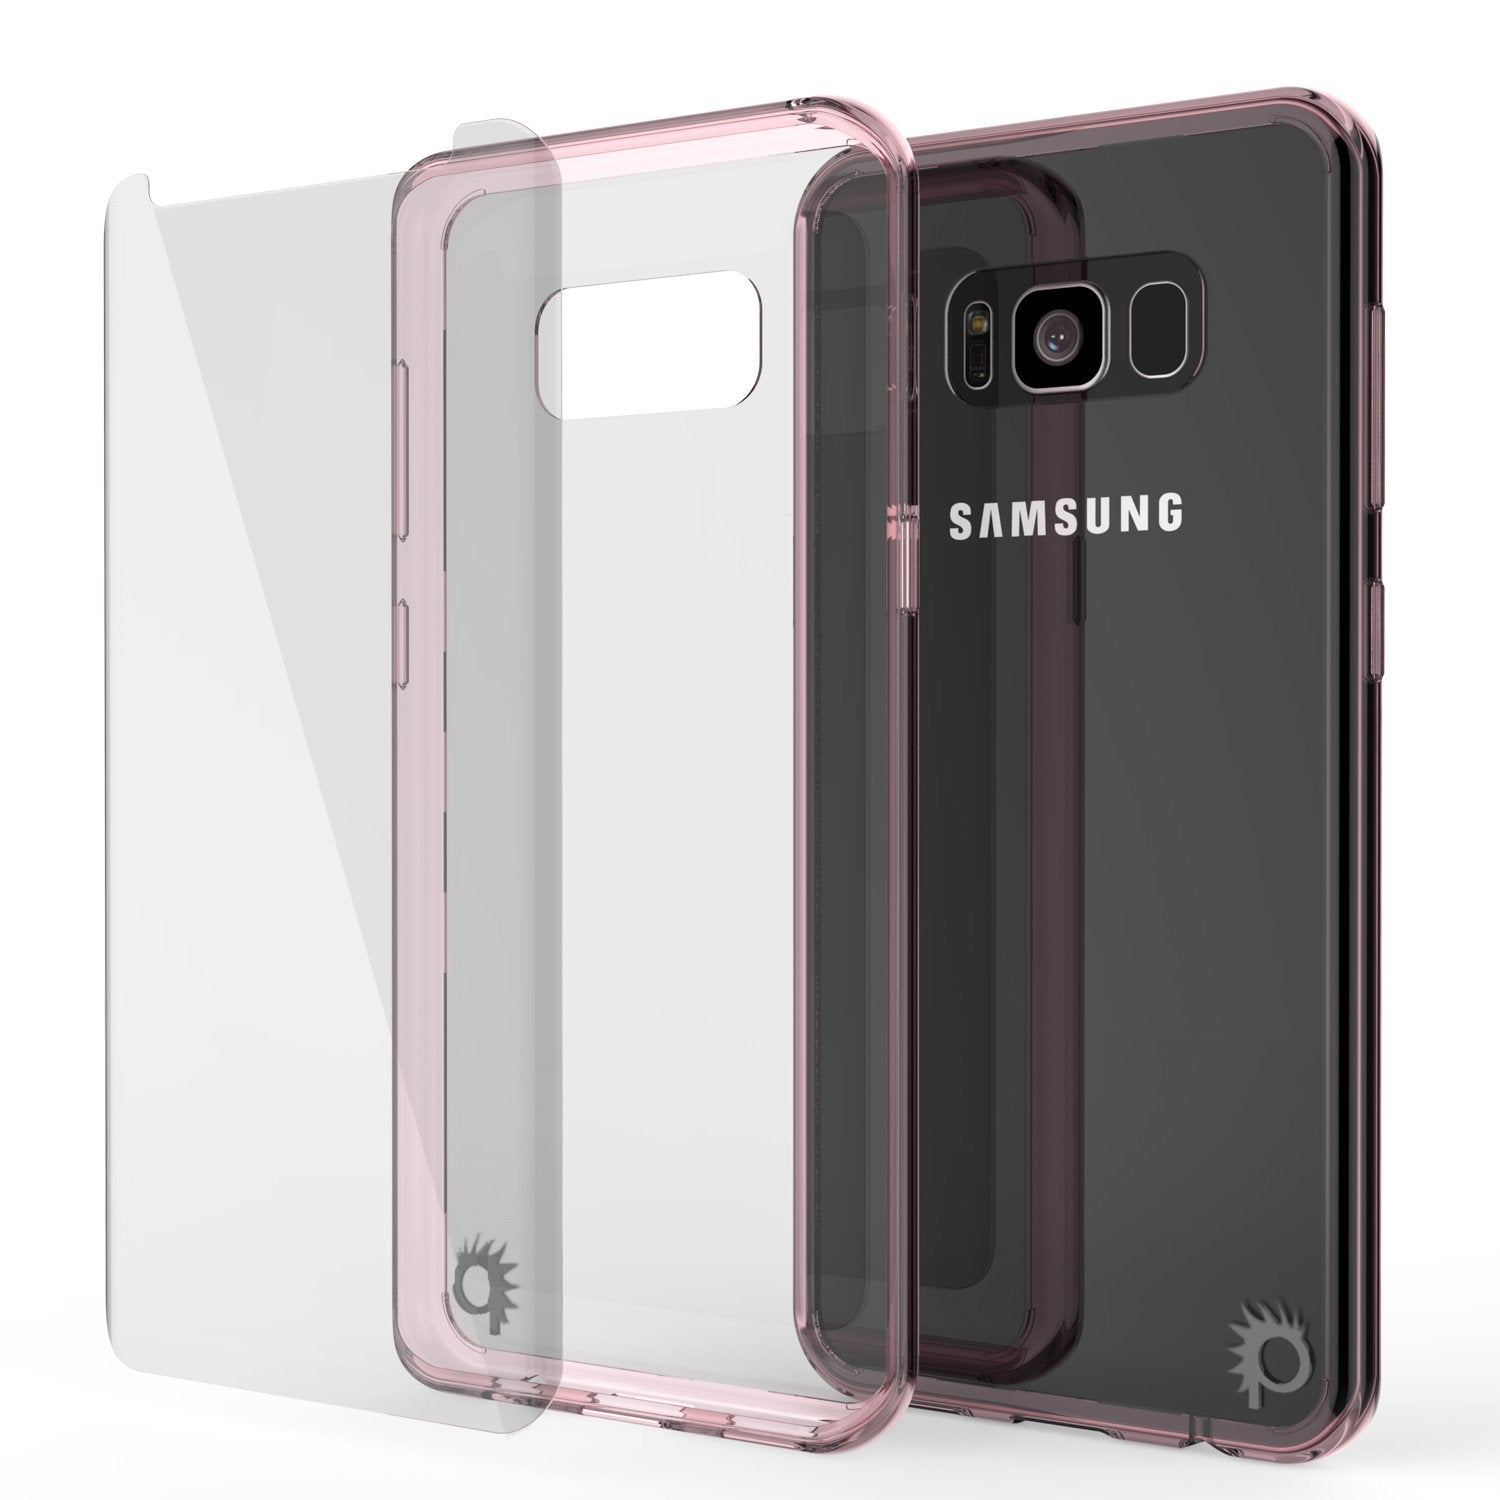 S8 Case Punkcase® LUCID 2.0 Crystal Pink Series w/ PUNK SHIELD Screen Protector | Ultra Fit